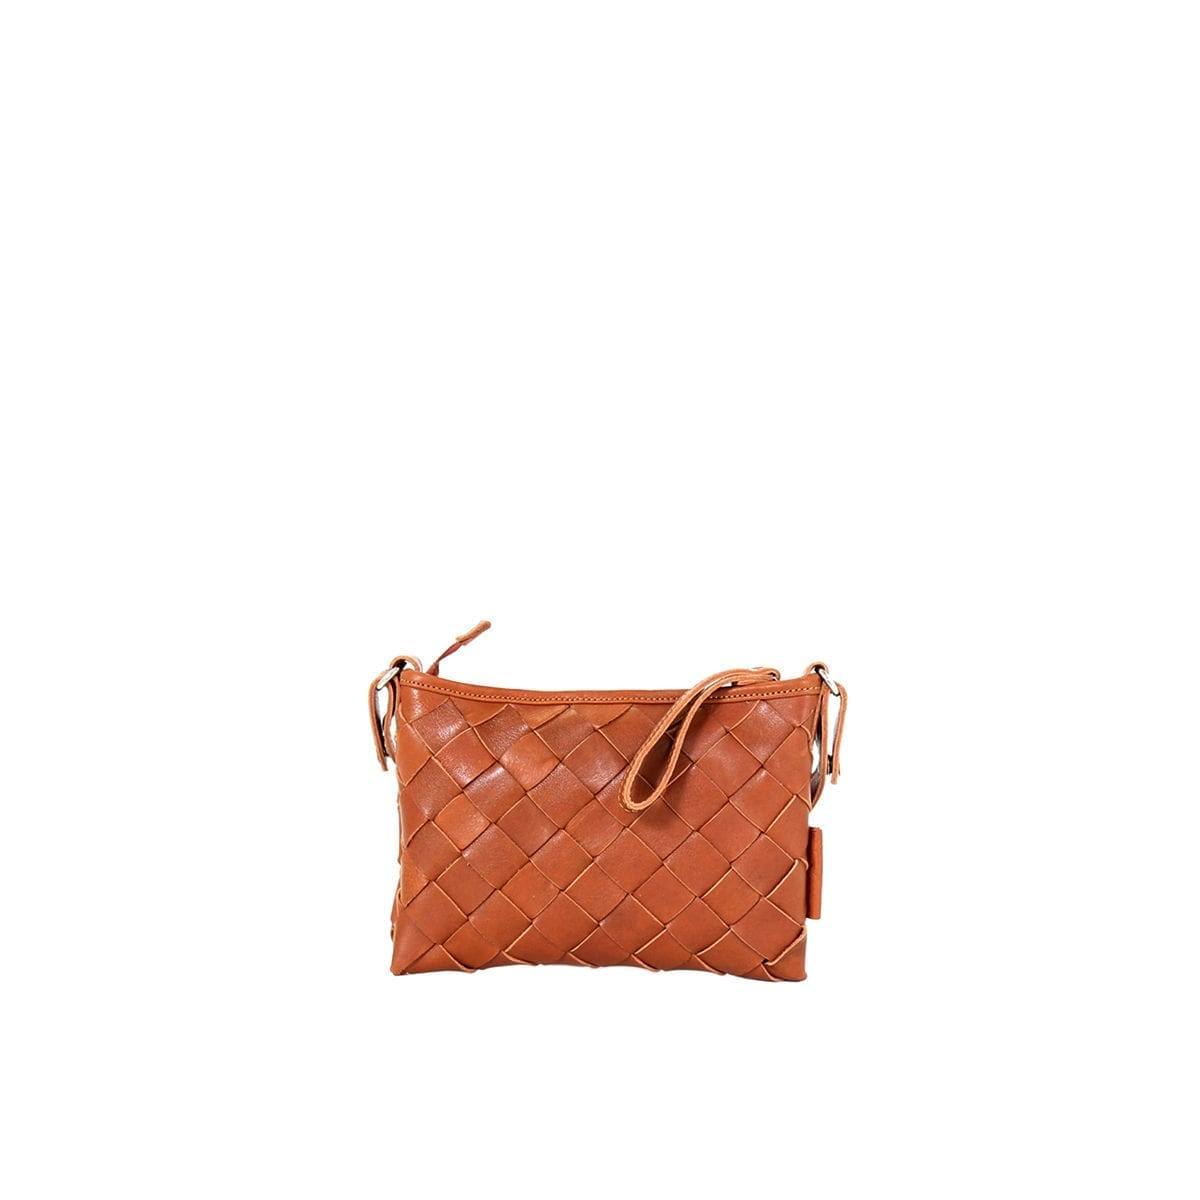 LUMI Toarie Woven Clutch Small in beautiful cognac.